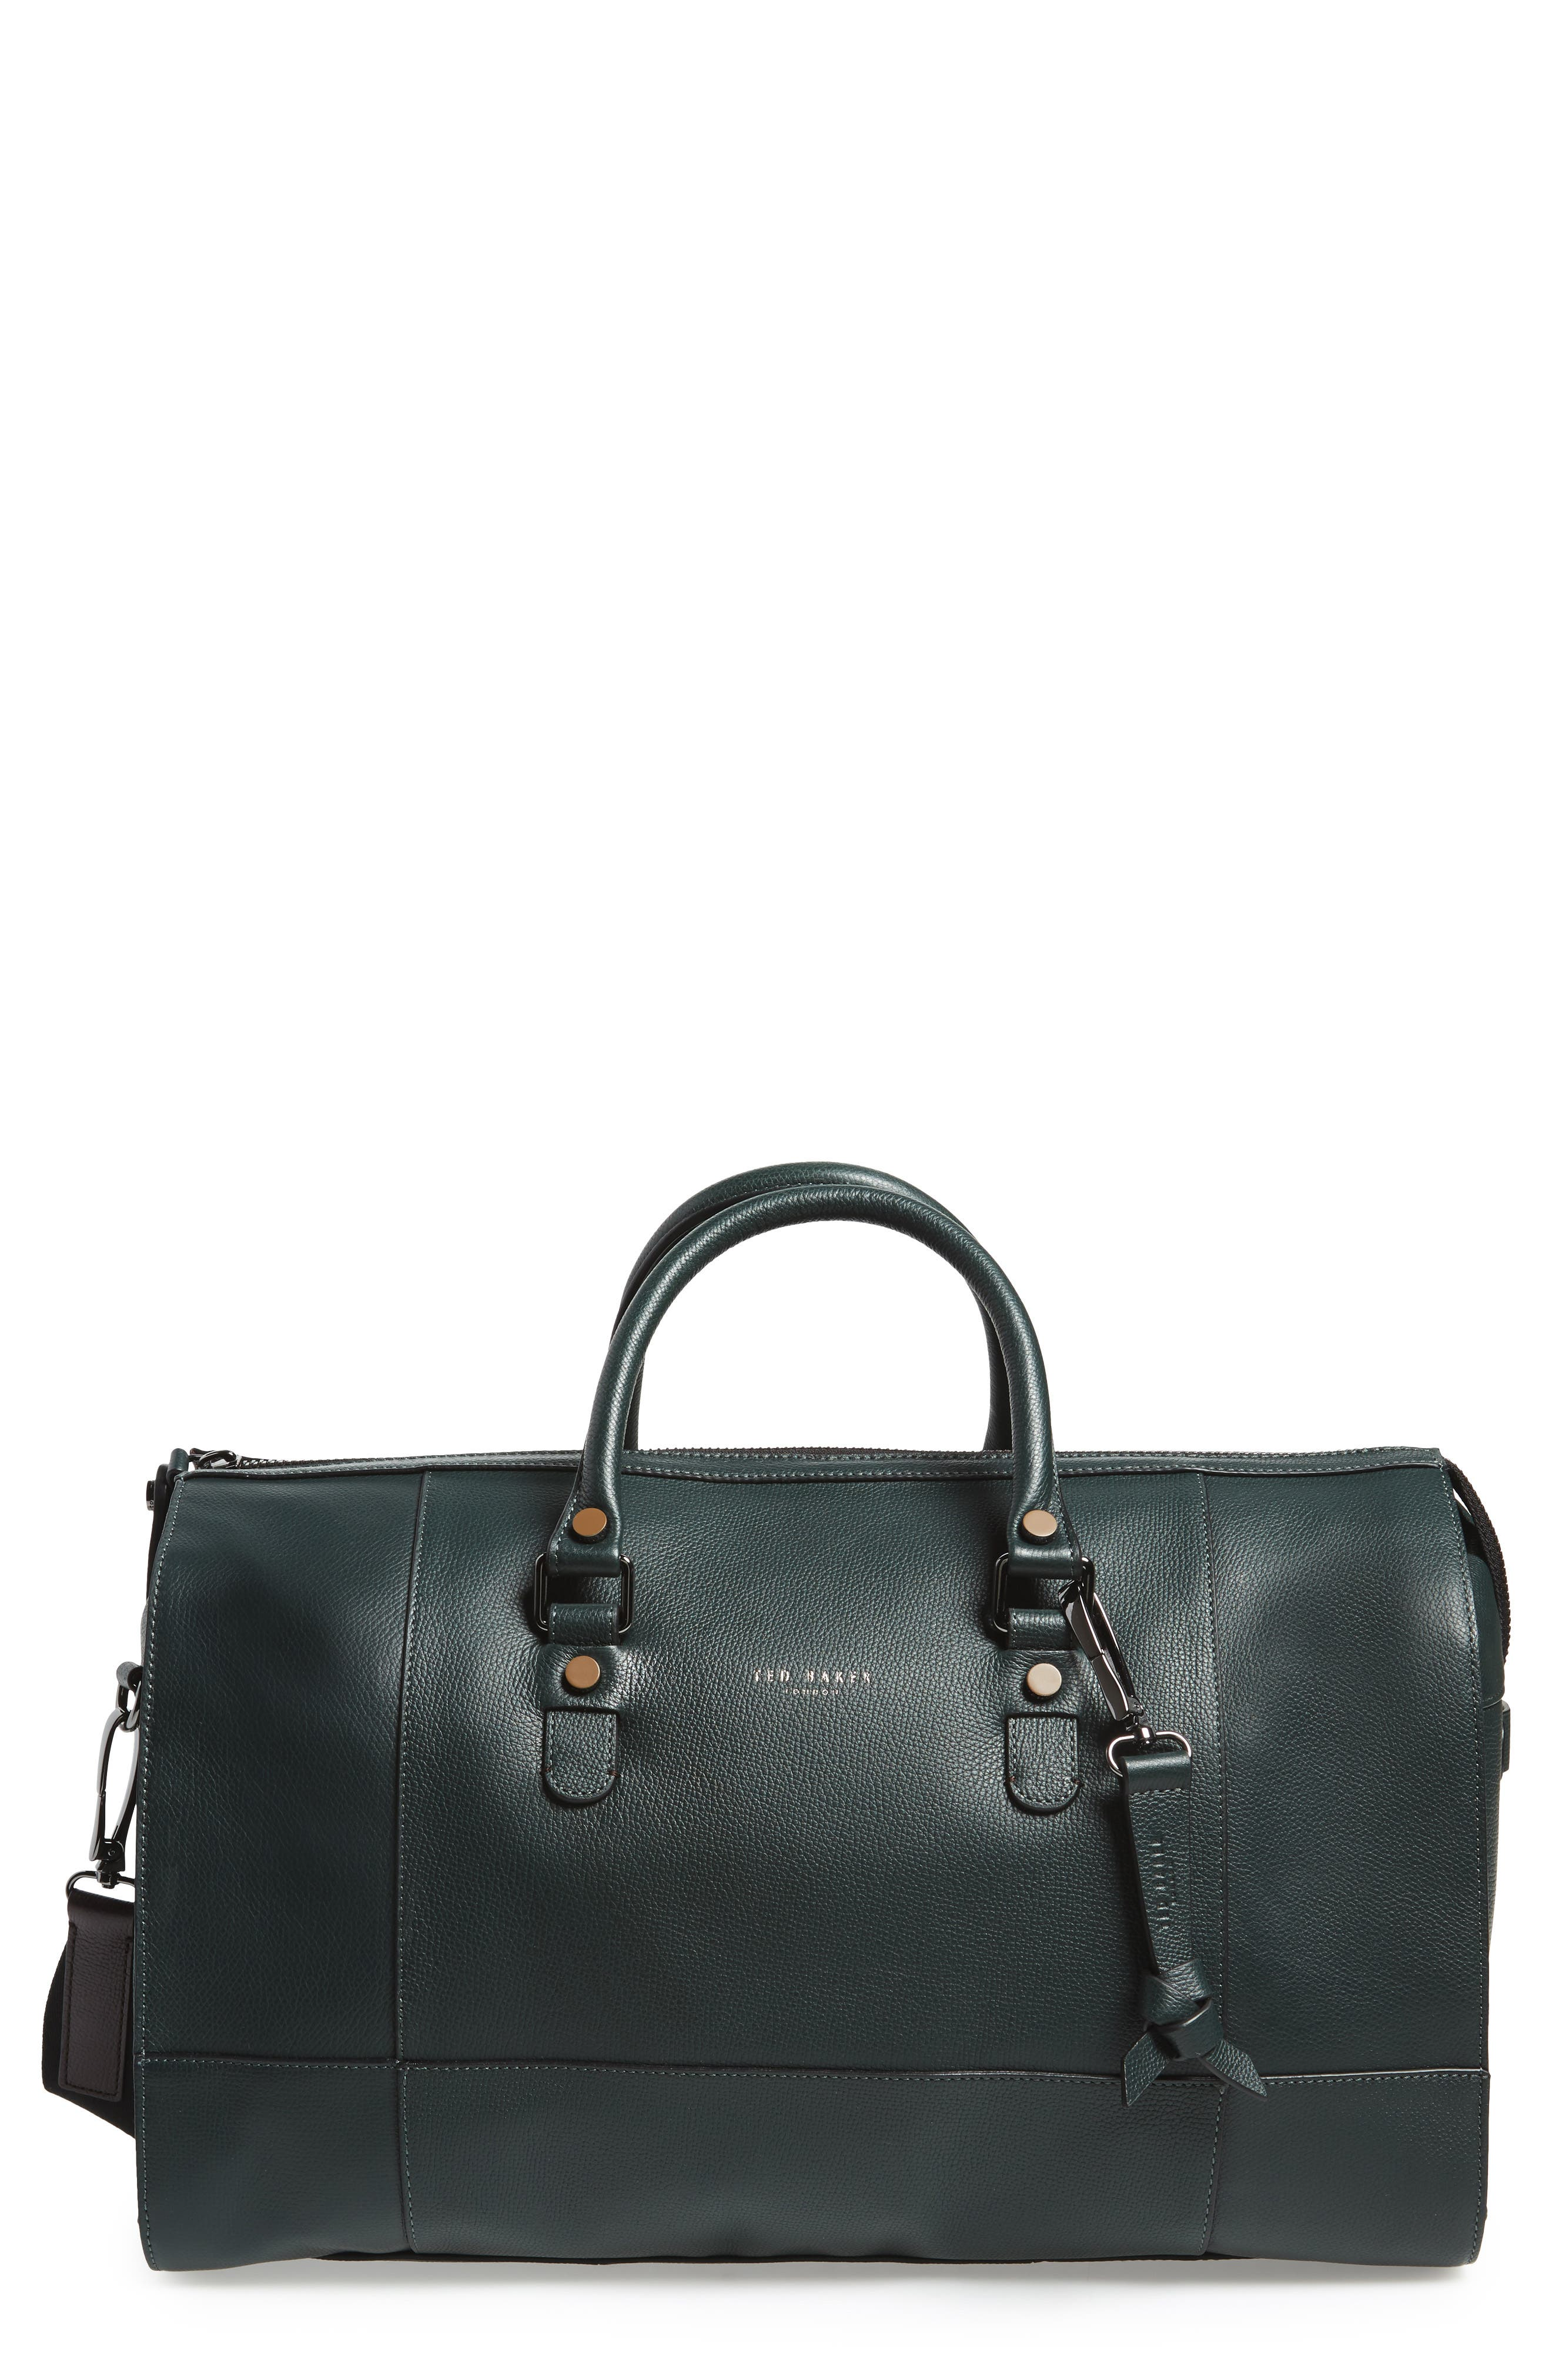 Panthea Leather Duffel Bag,                             Main thumbnail 1, color,                             301